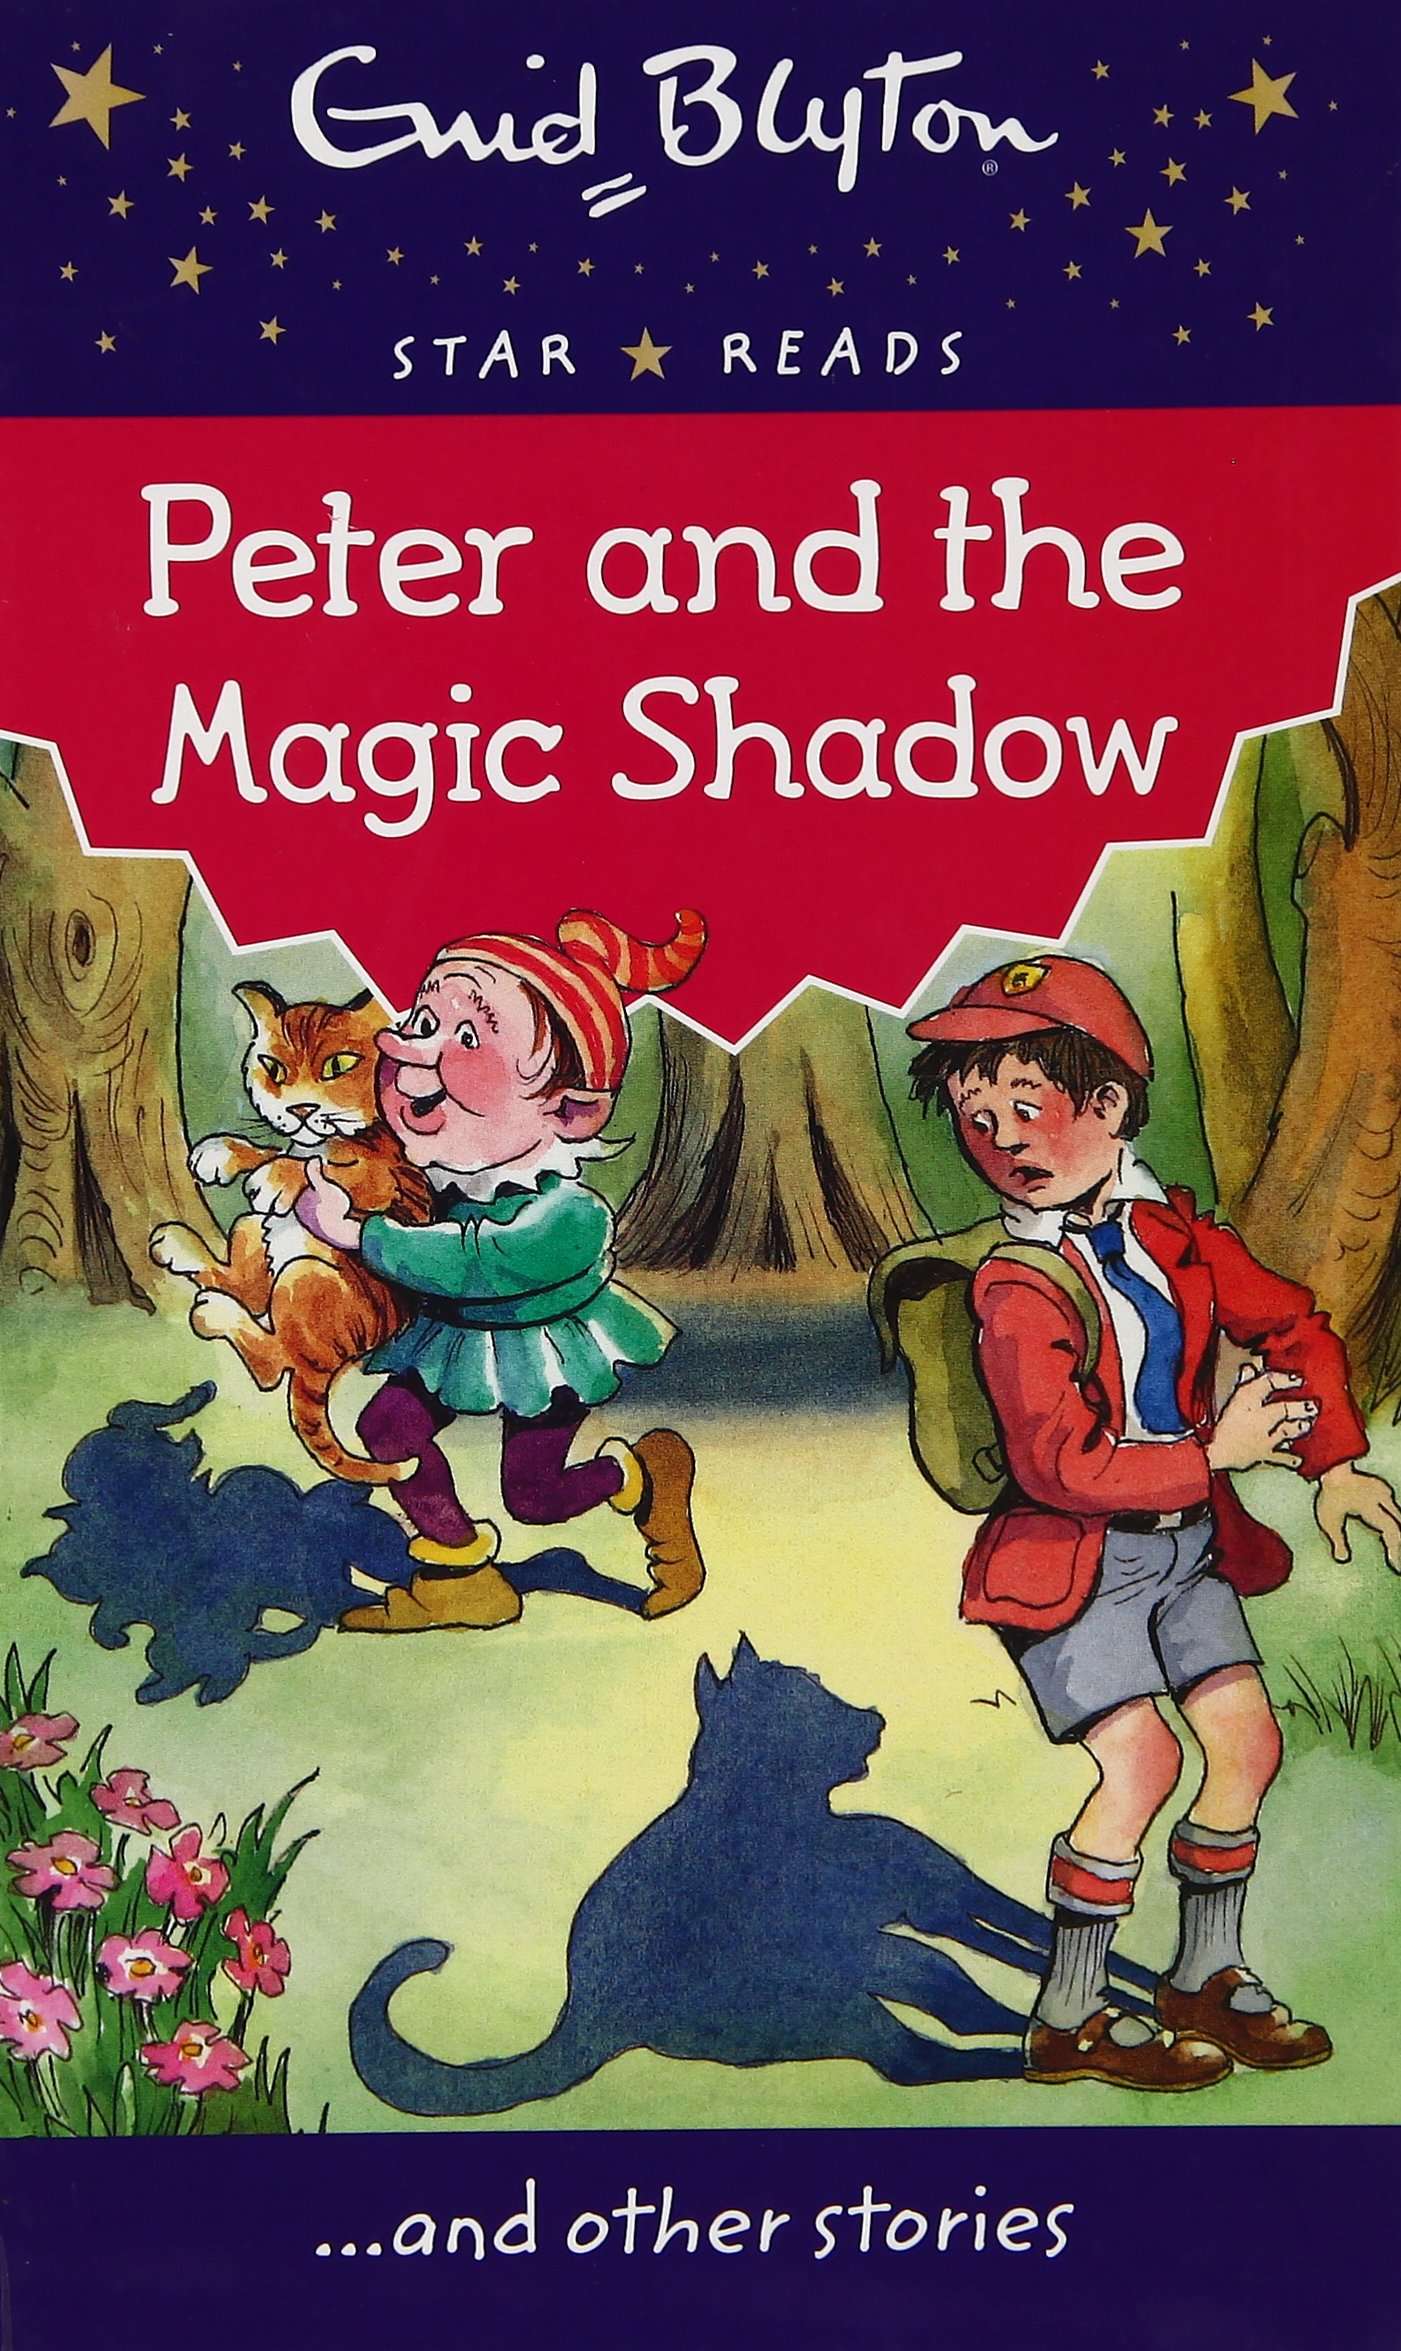 Download Peter and the Magic Shadow (Enid Blyton: Star Reads Series 3) pdf